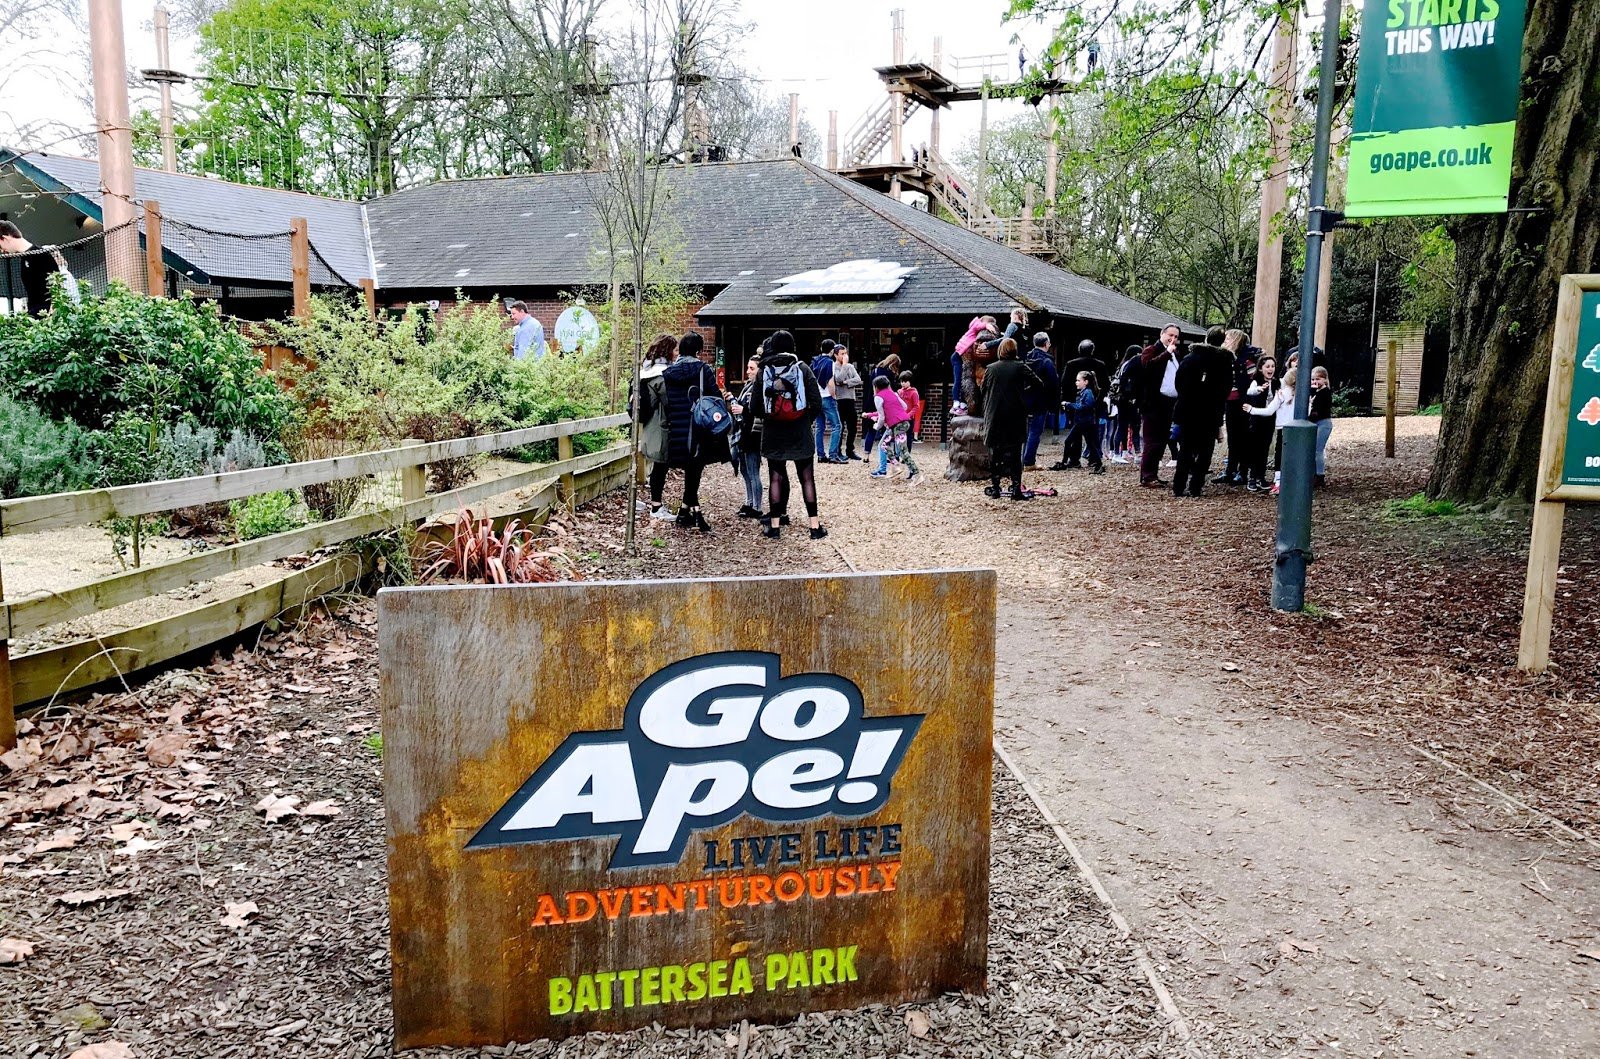 Go Ape Adventure Battersea Park